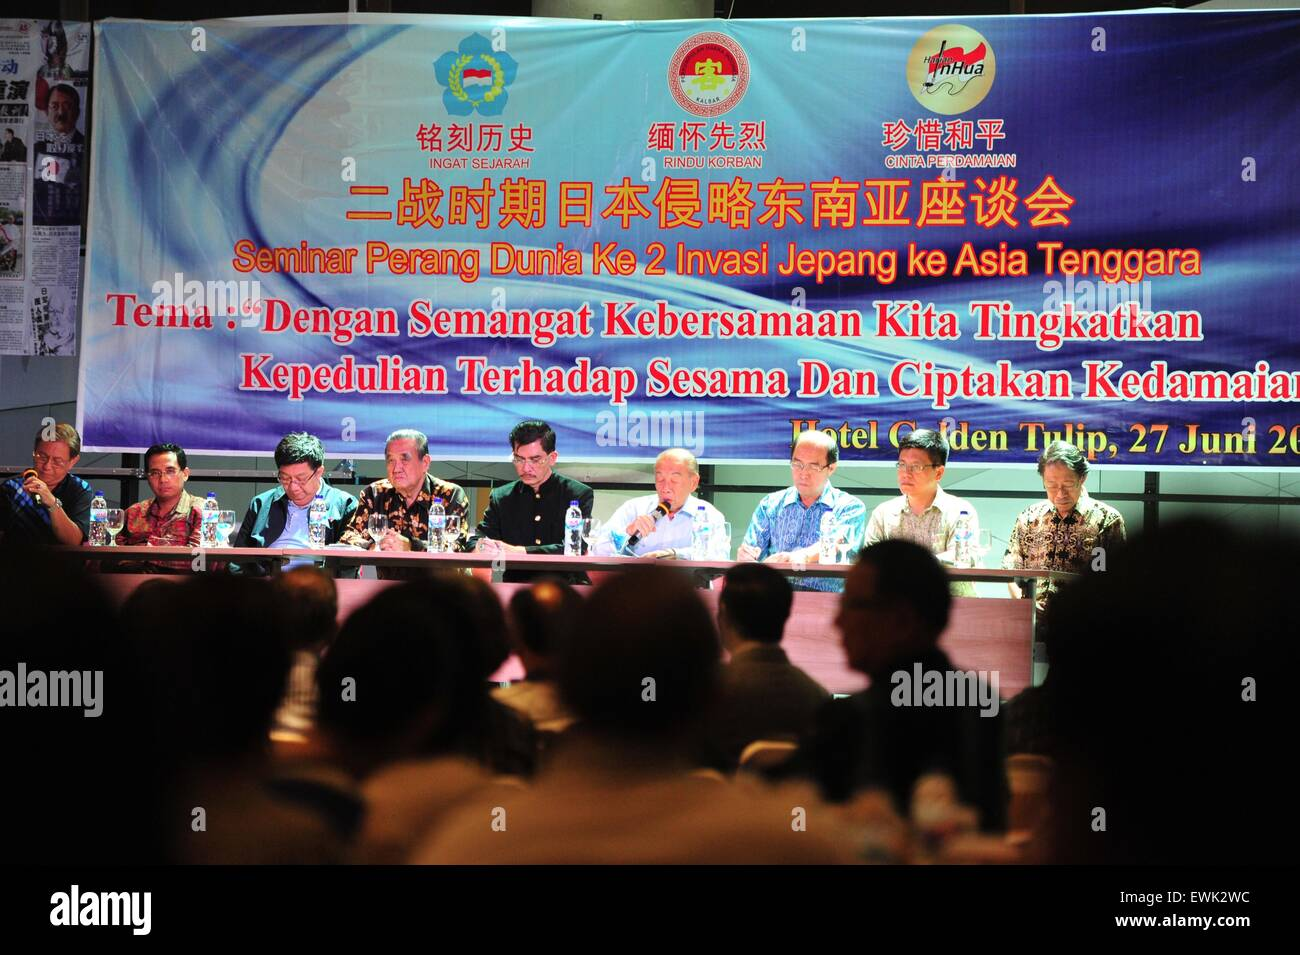 Pontianak, Indonesia. 27th June, 2015. Speakers attend a seminar of World War II Japan's invasion of Southeast - Stock Image